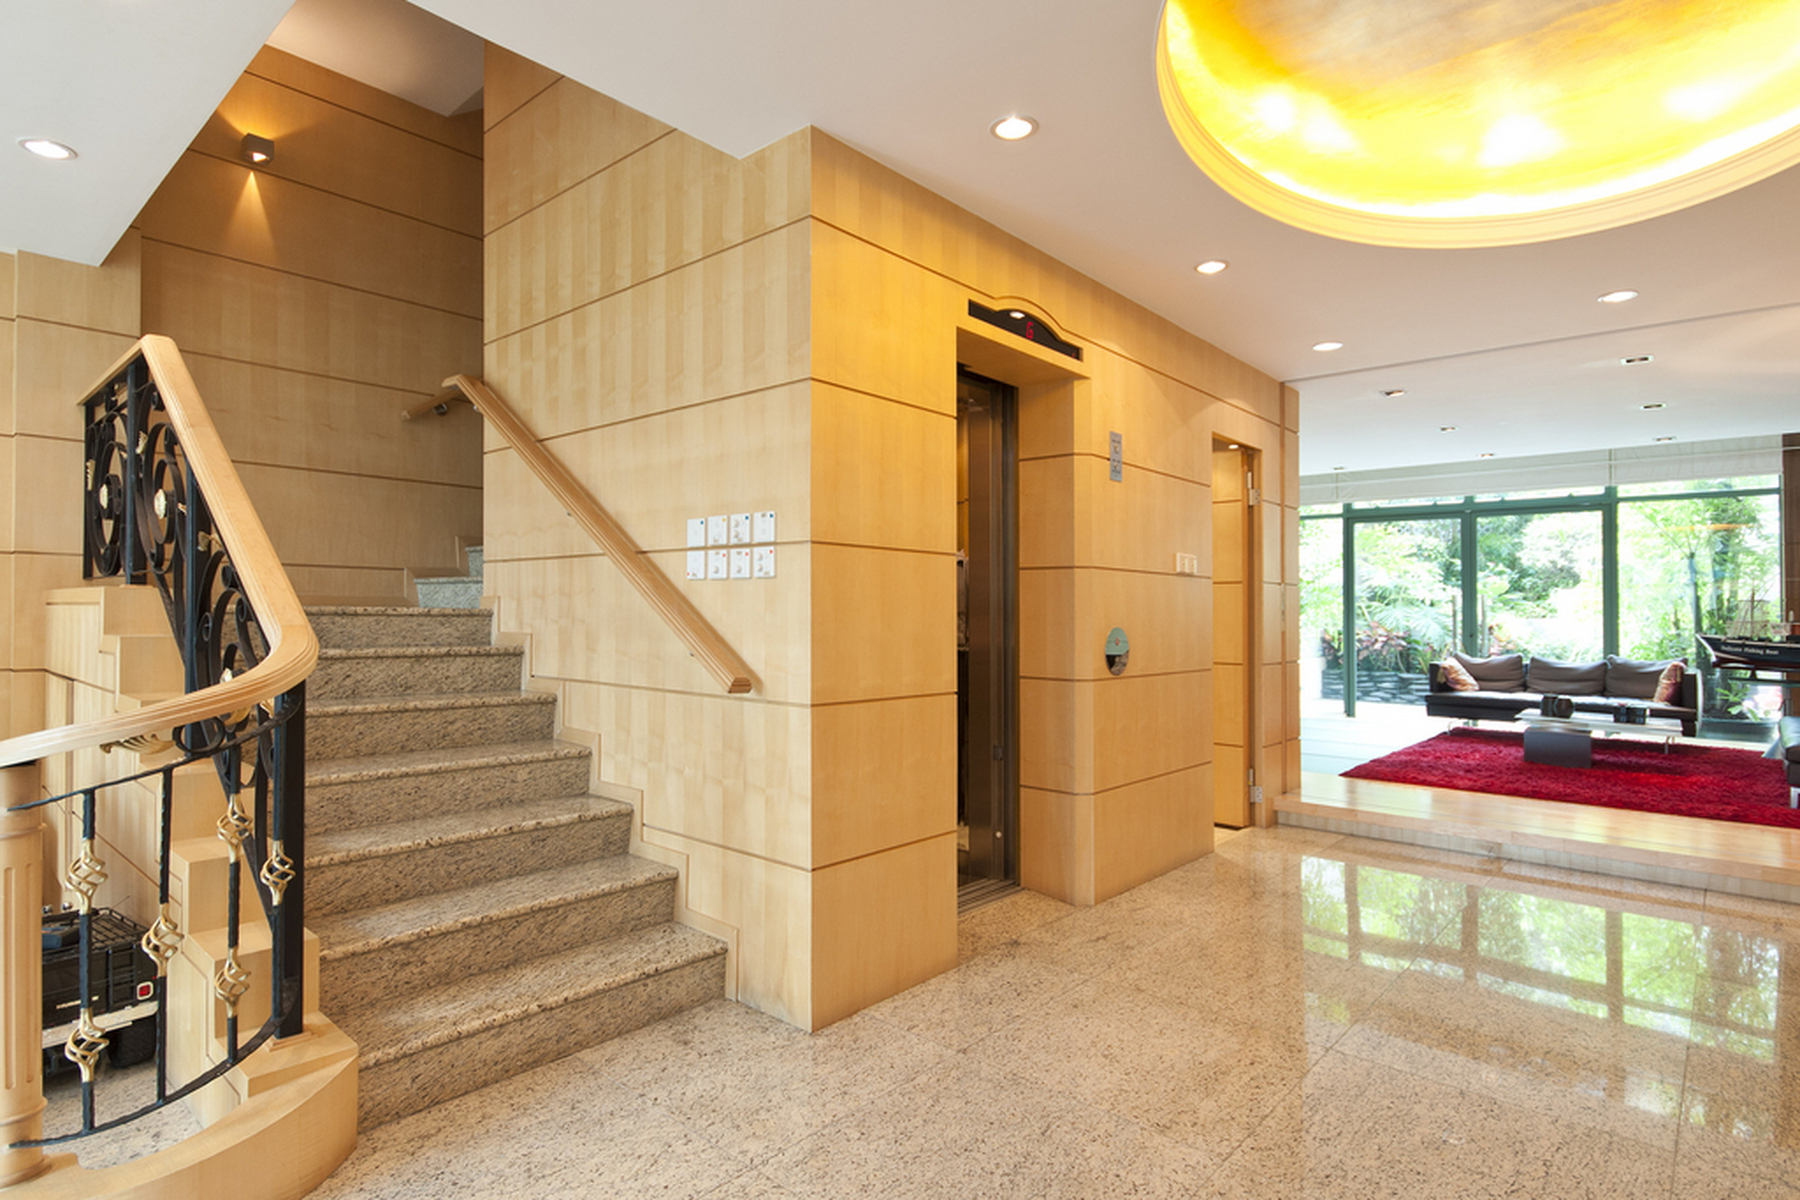 Townhouse for Sale at Hampshire Road, 16-22 Kowloon Tong, Hong Kong